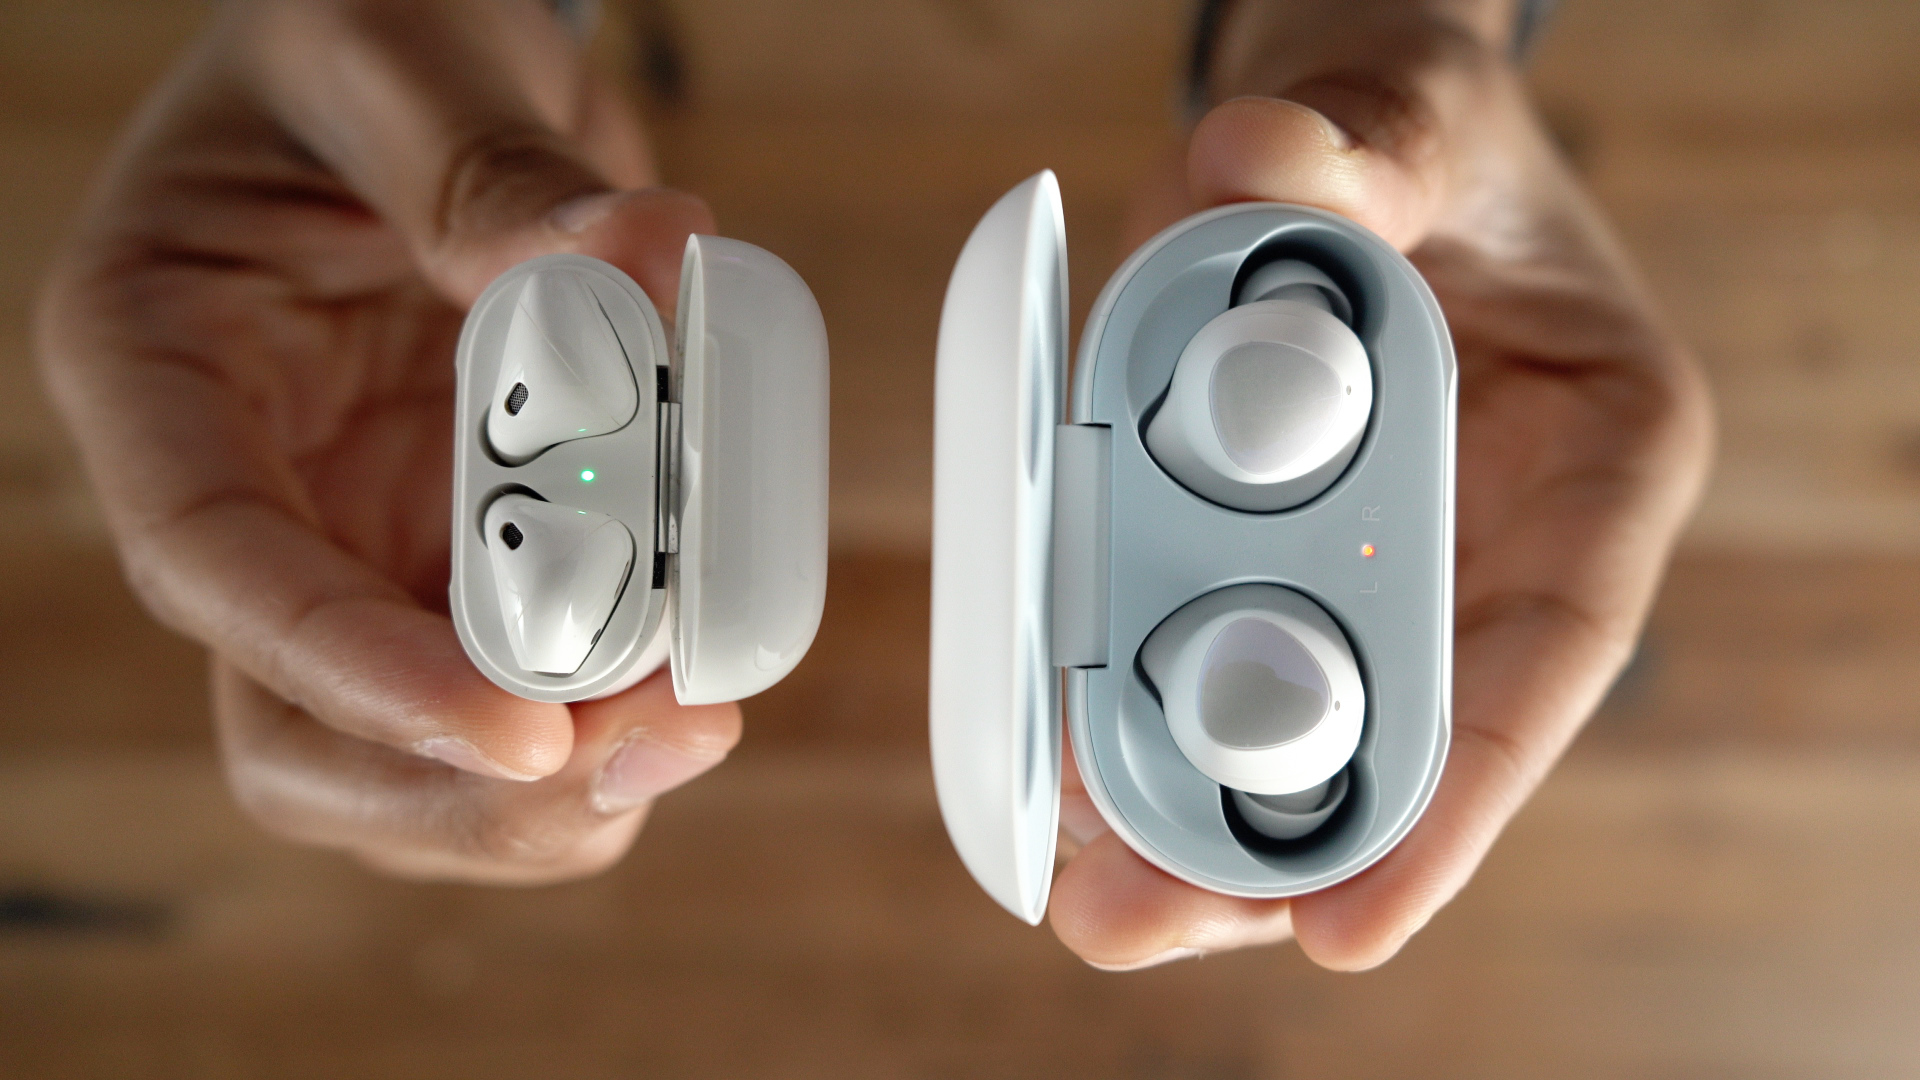 Samsung Galaxy Buds: impressions from an AirPods user